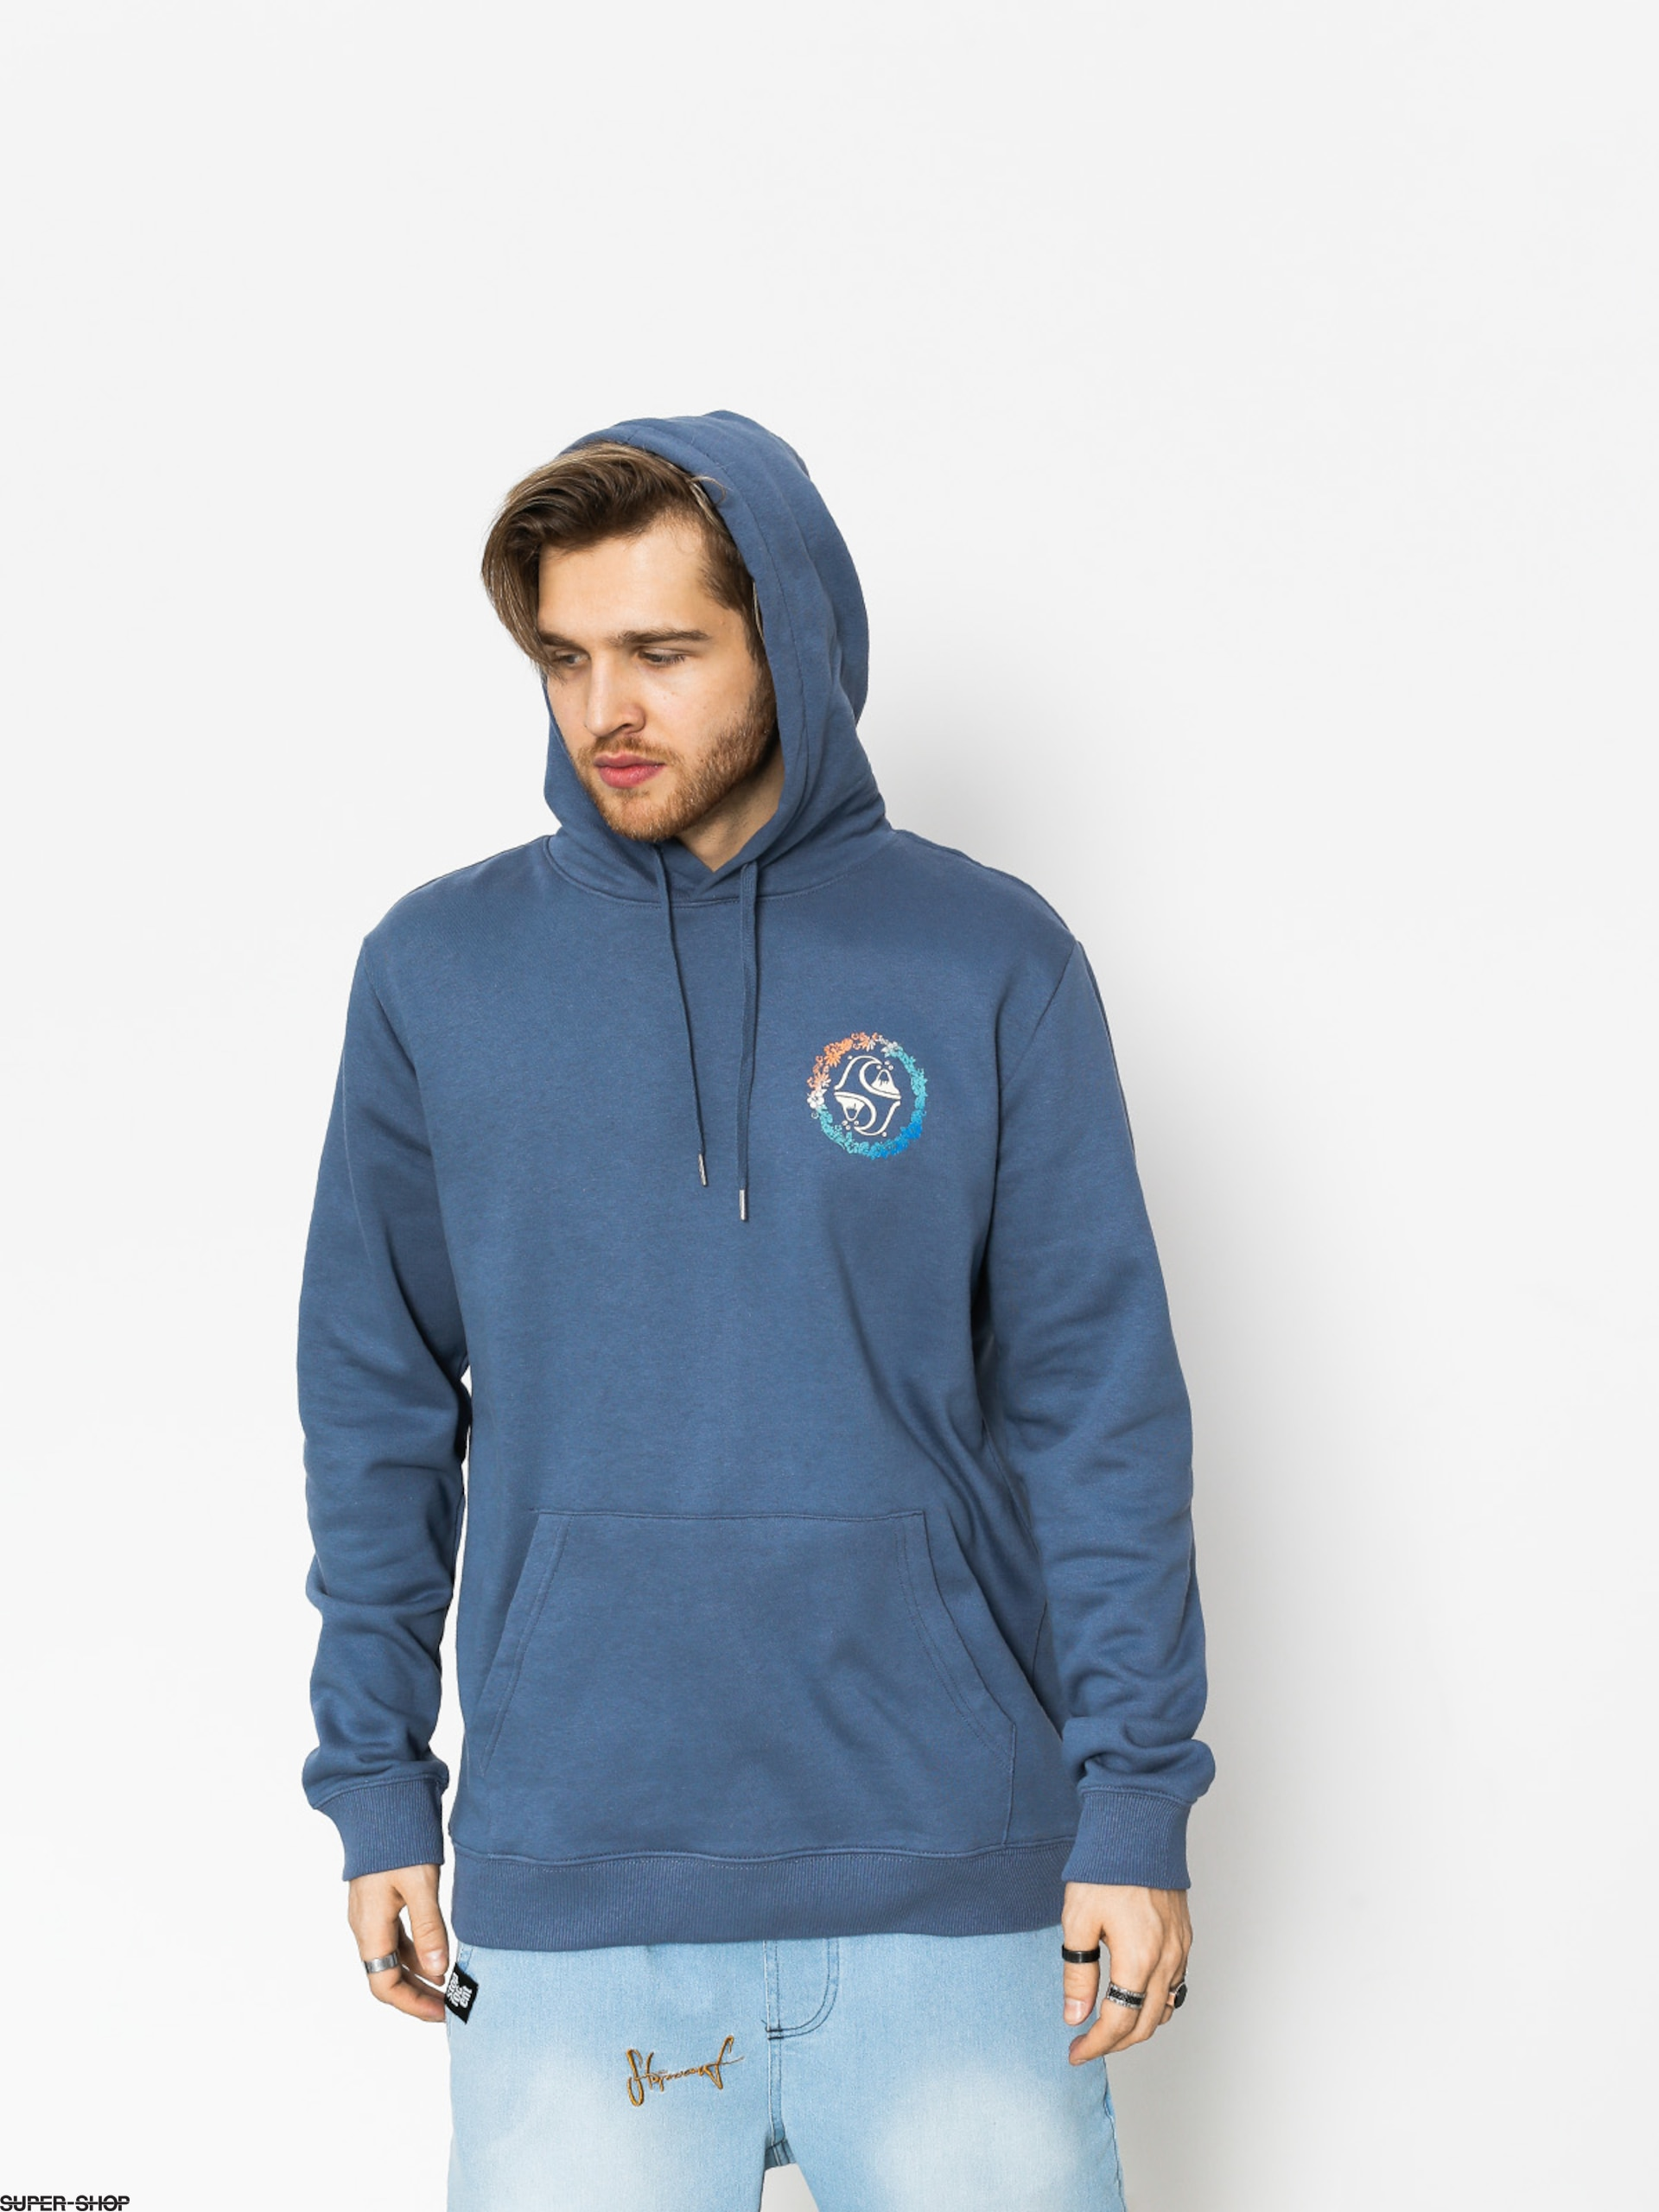 Quiksilver Hoodie Authorized Dealers 1 HD